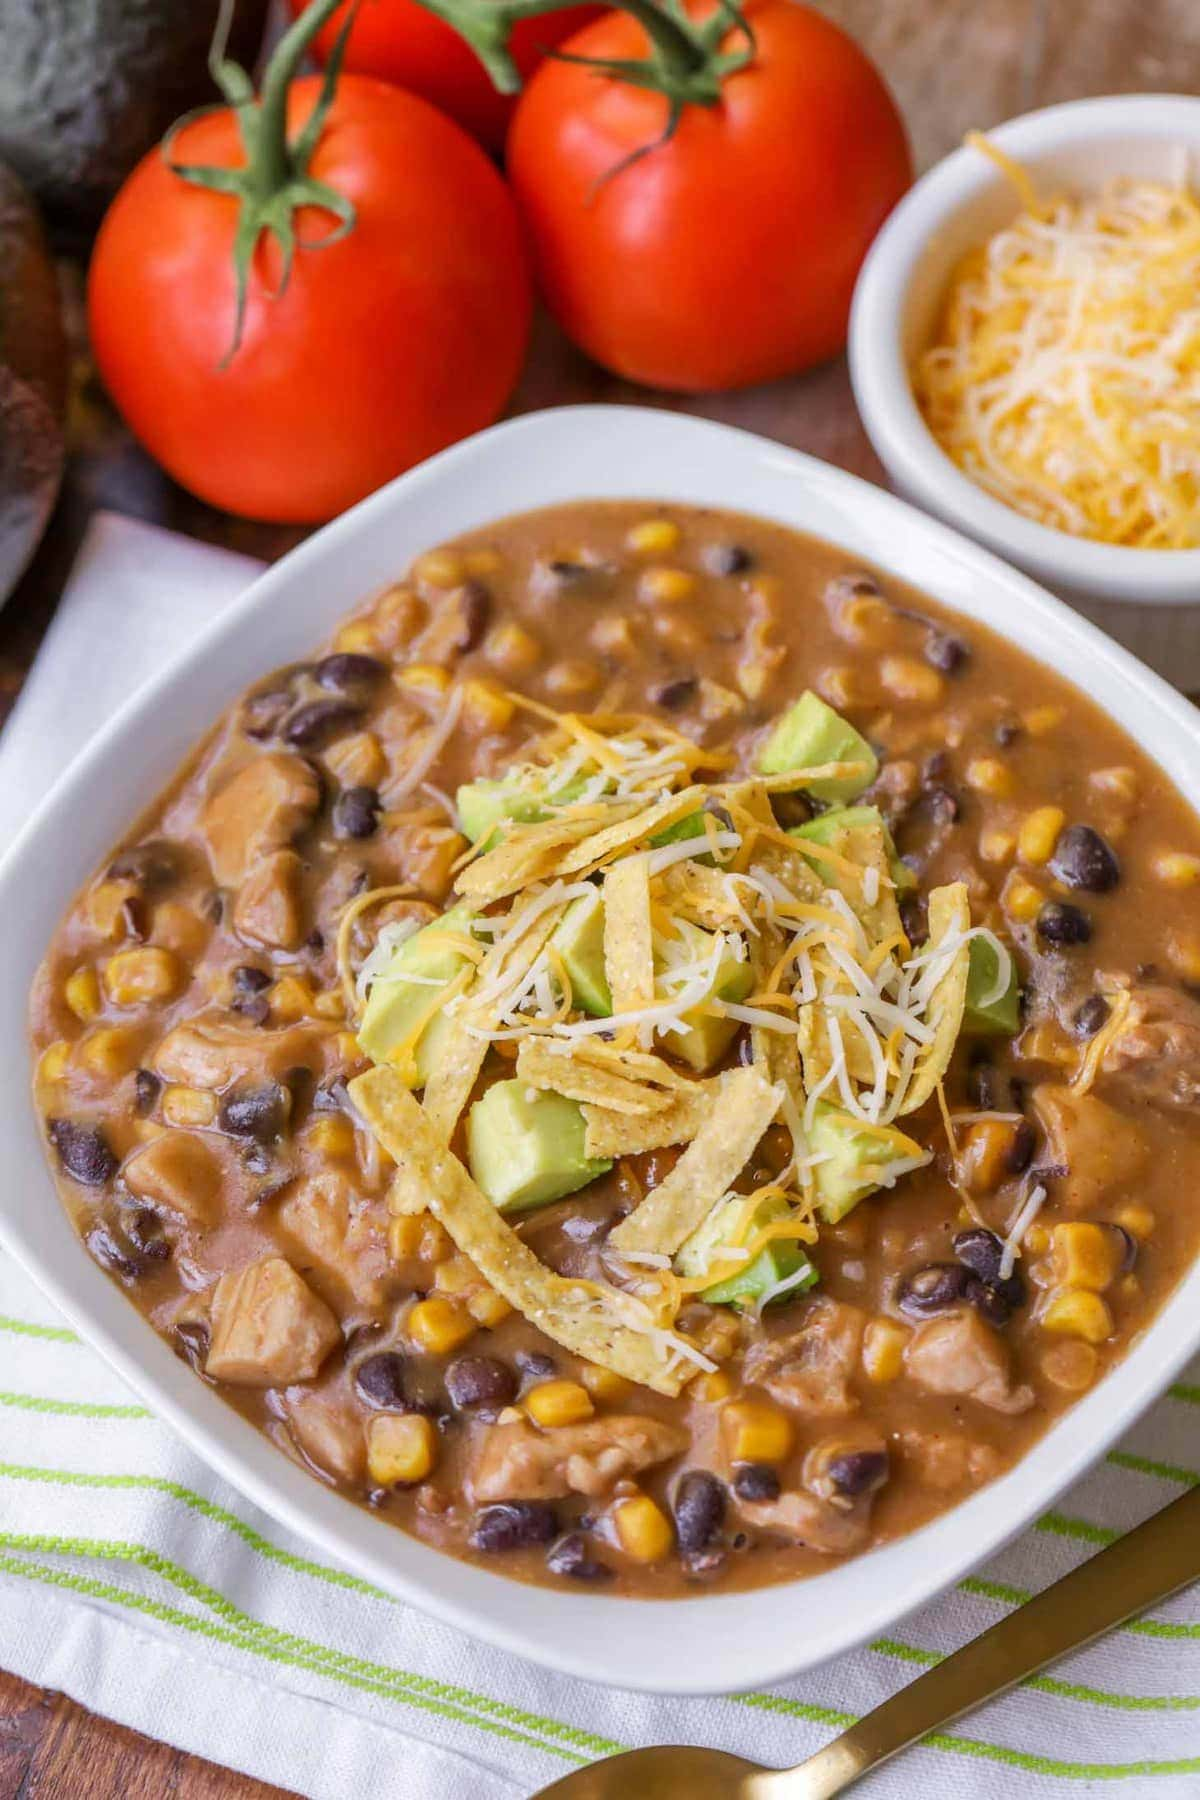 A delicious and flavorful Chicken Chili filled with beans, corn, enchilada sauce, spices and topped with tortilla strips, cheese and avocados. Everyone loves this recipe!